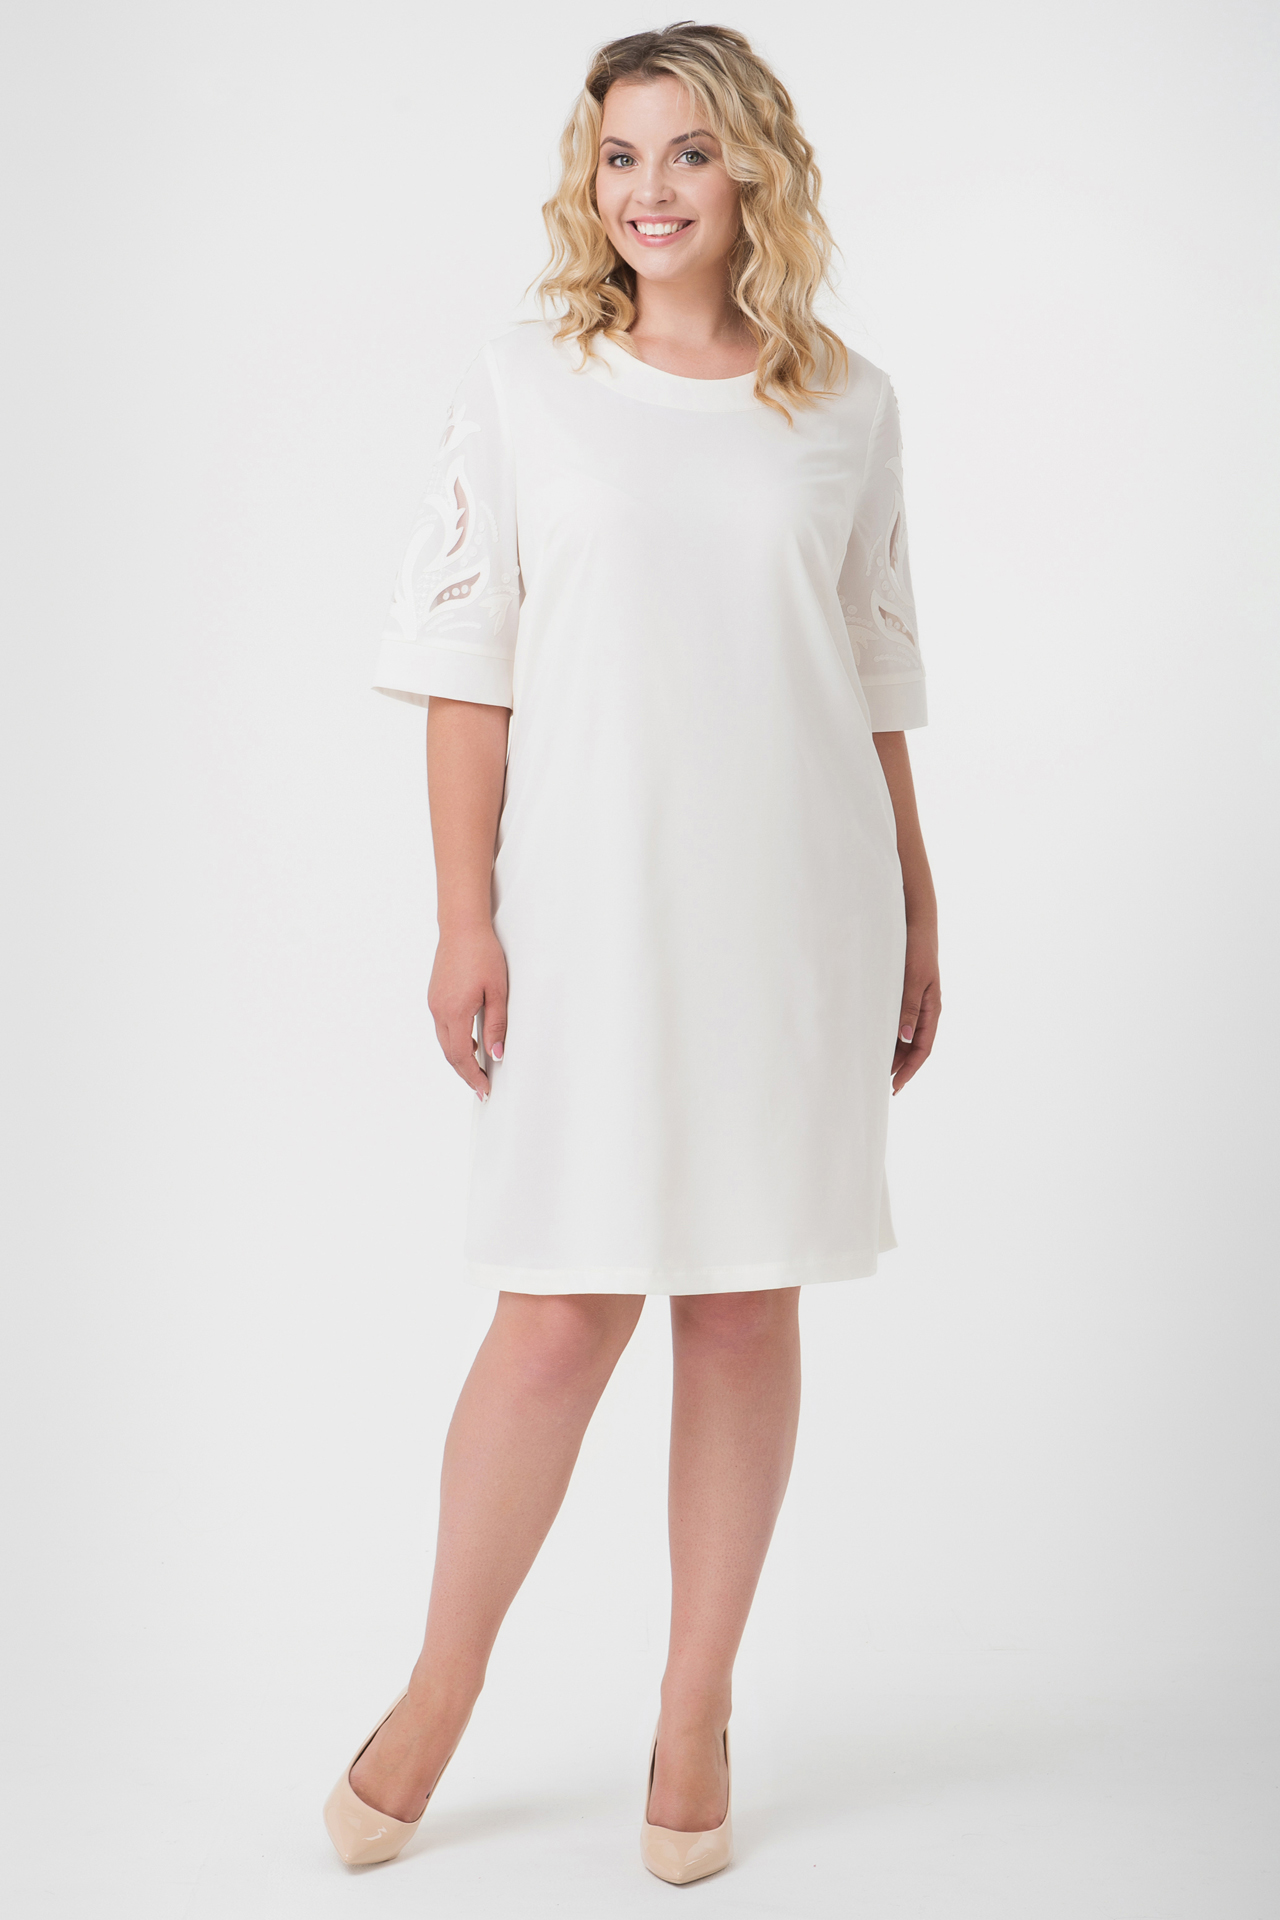 Buy White women`s knee-length dress, Elegant short sleeve dress with decor